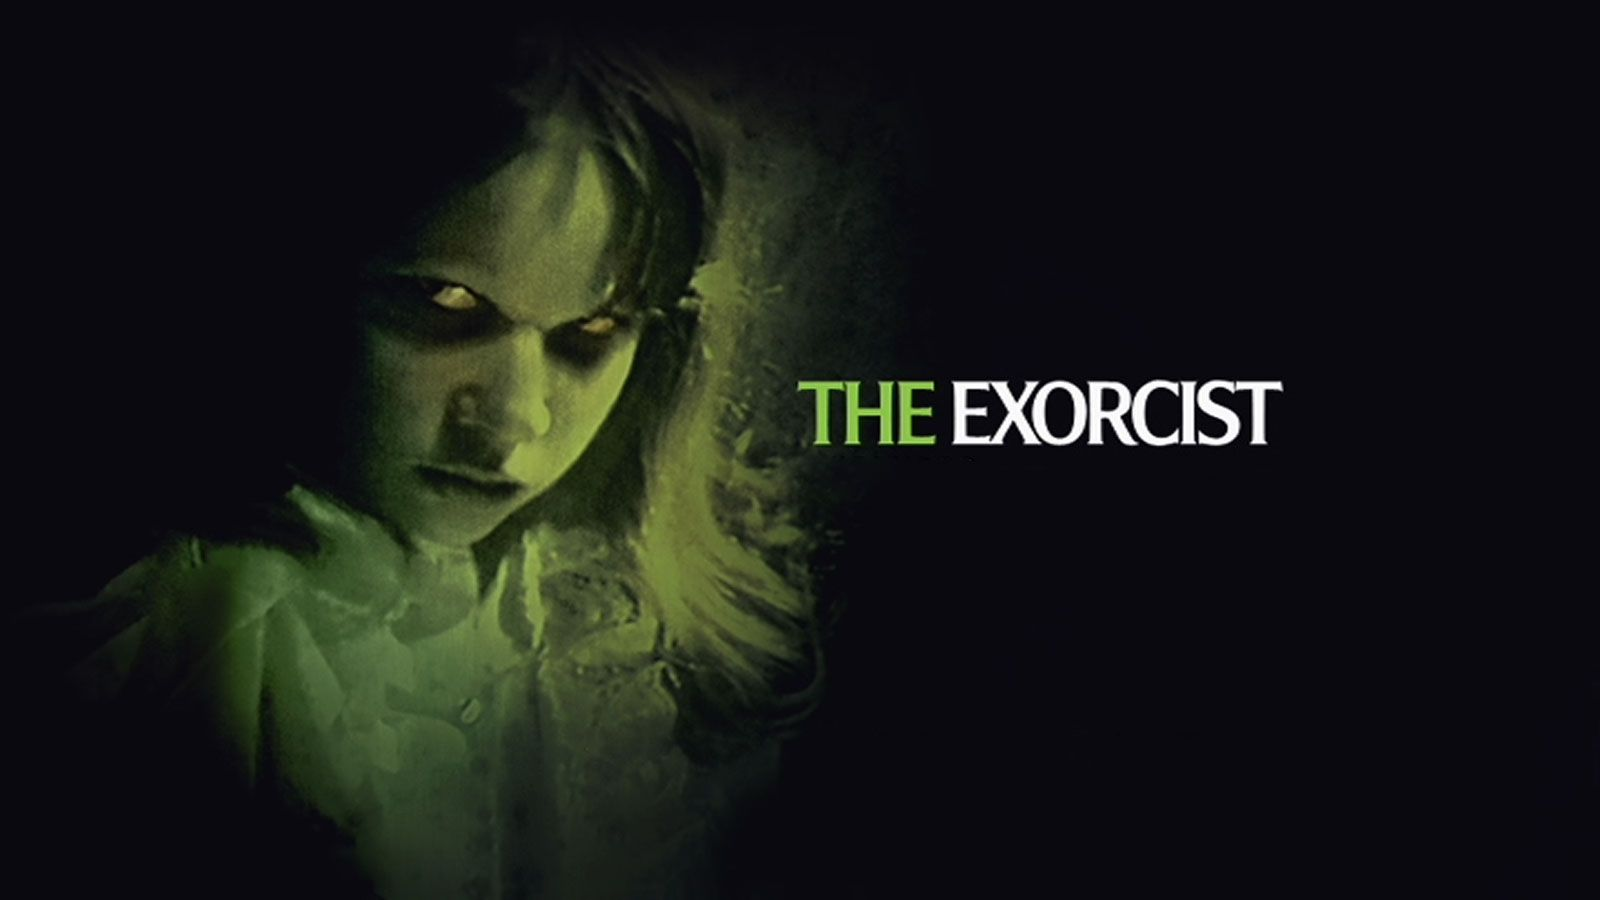 the exorcist wallpaper #4